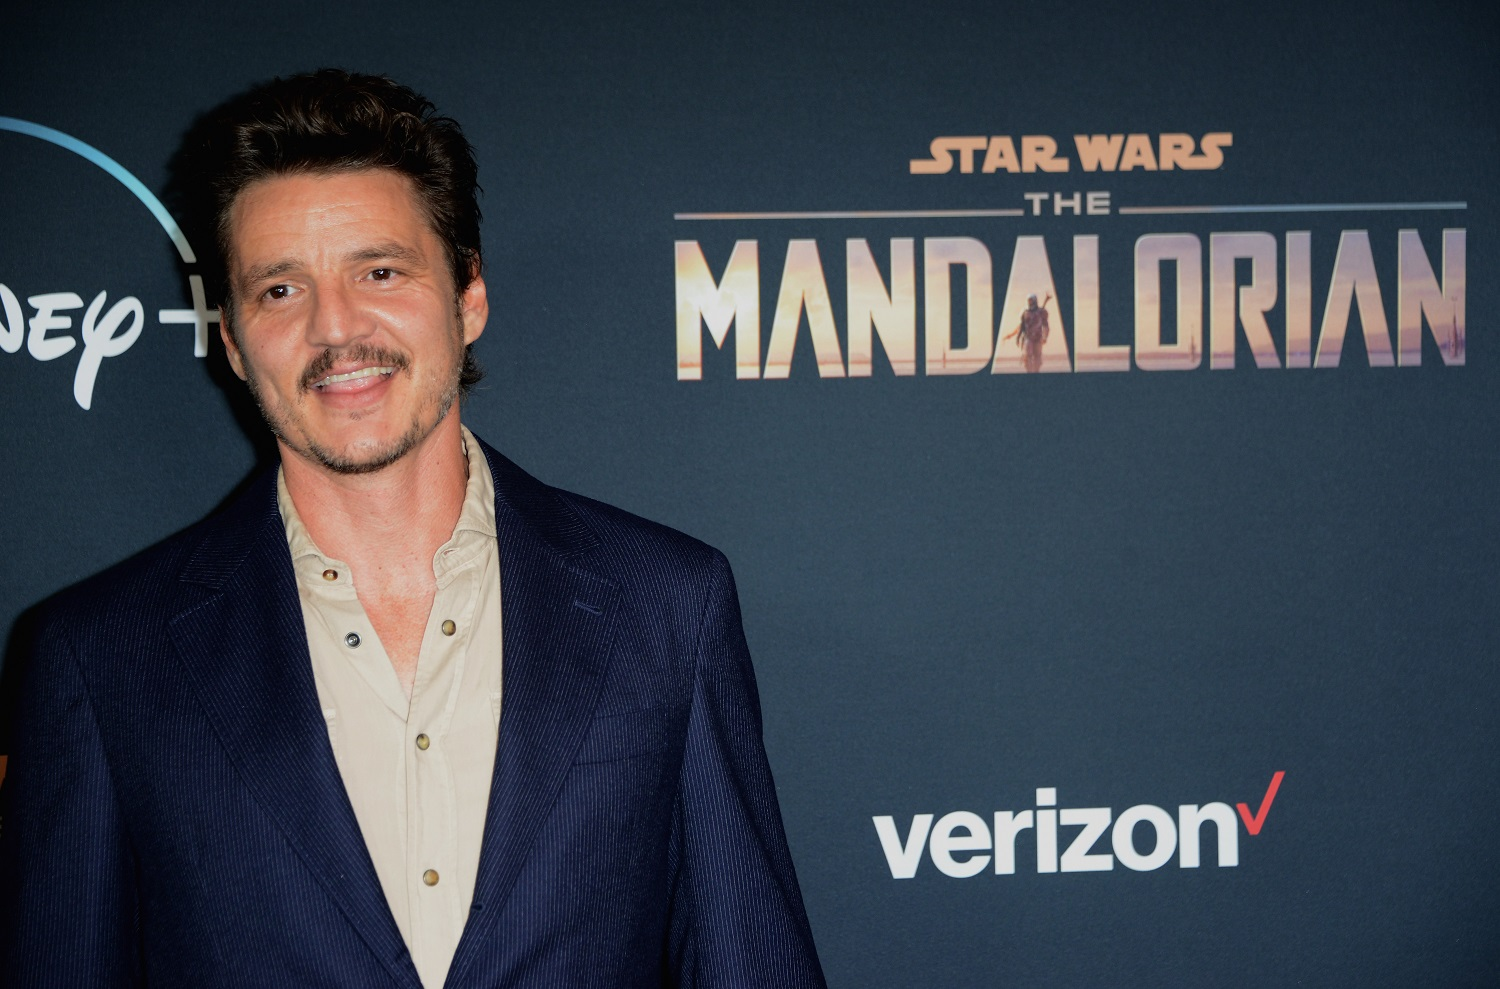 Pedro Pascal of the Mandalorian